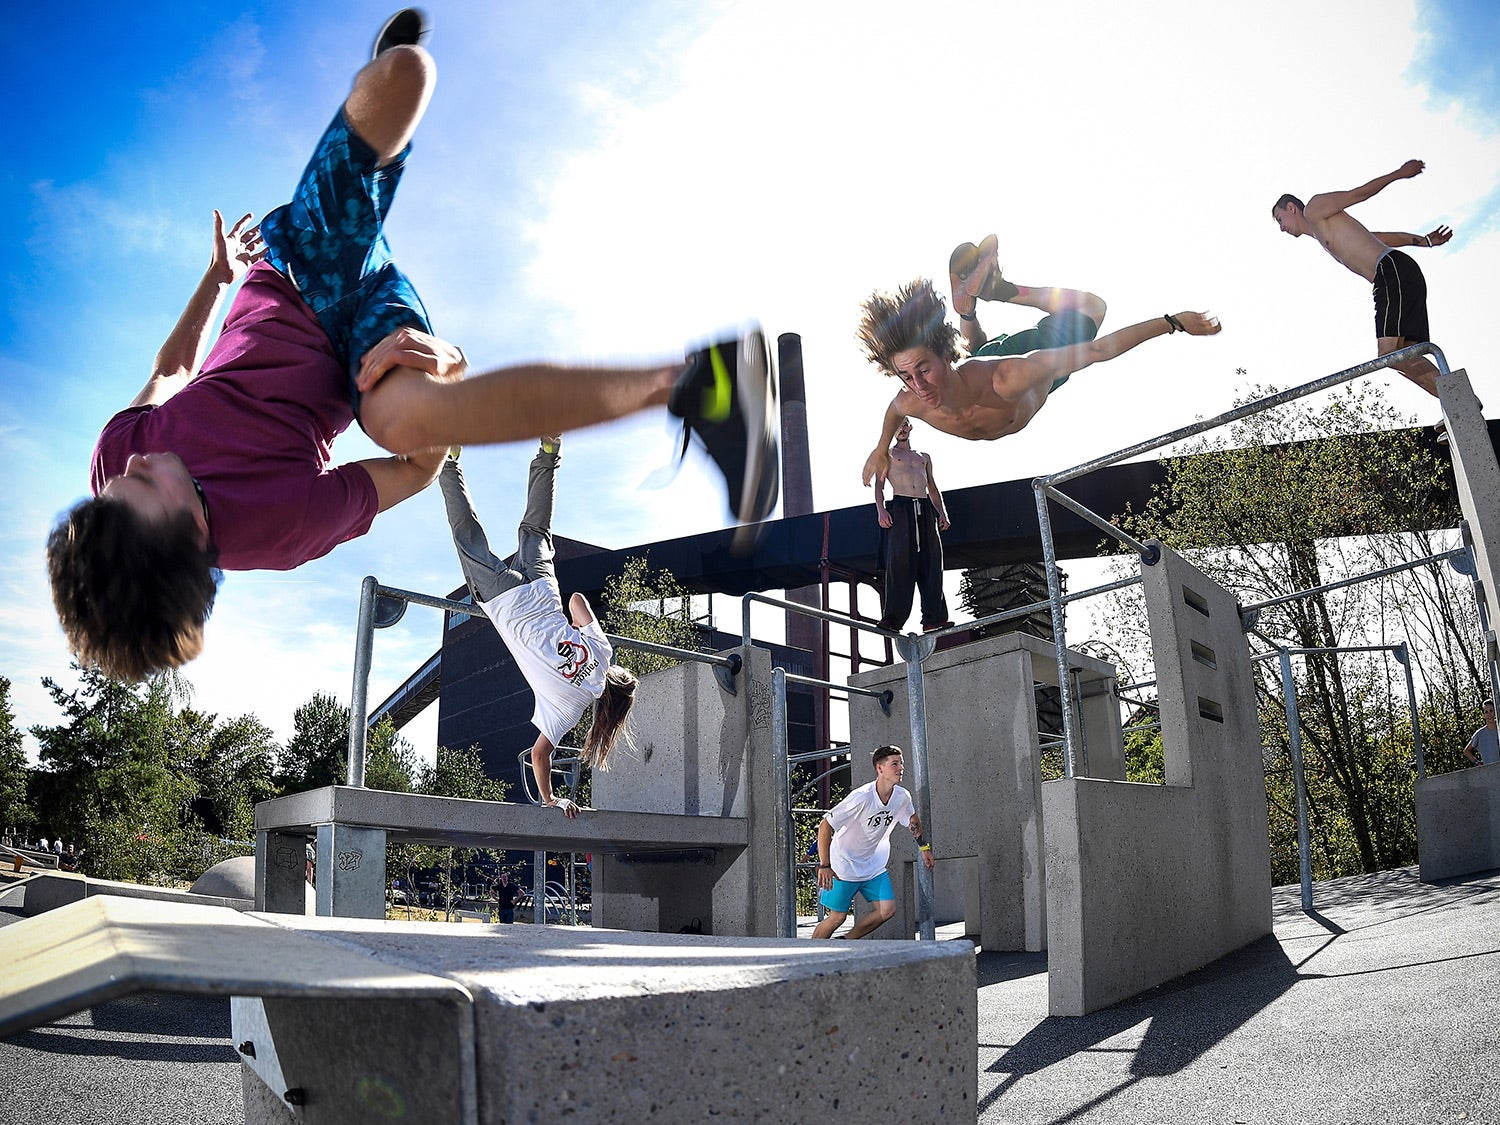 Parkour at the park